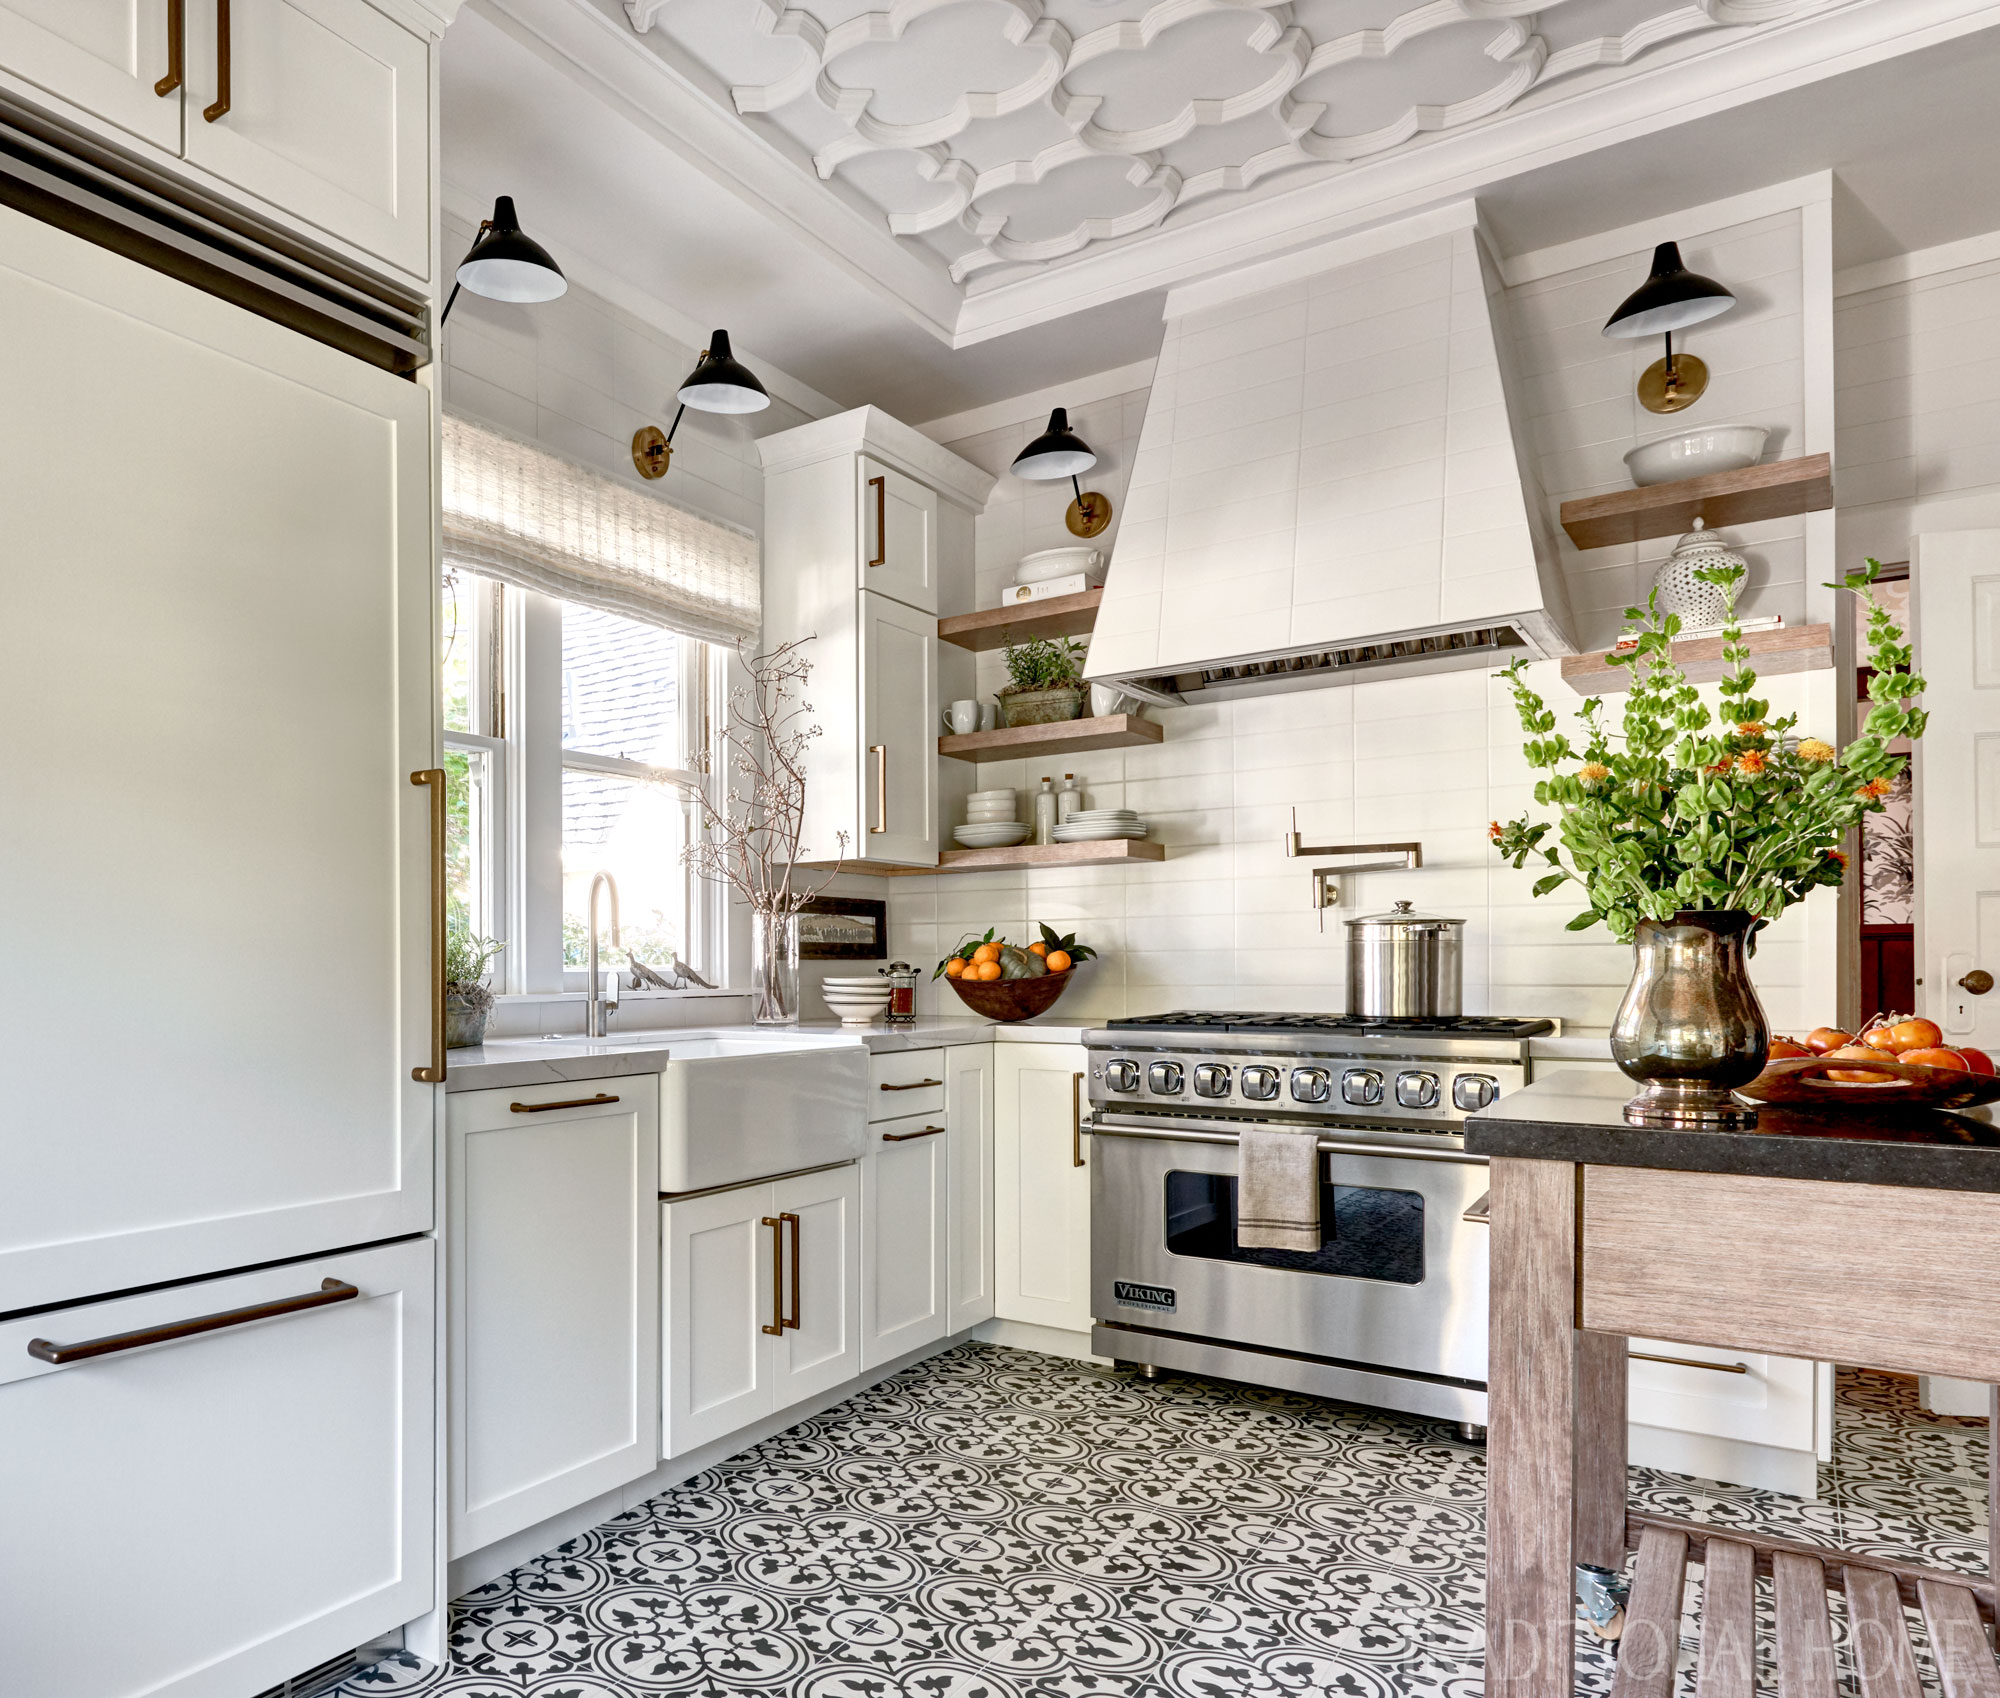 The Top 10 Flooring Trends For 2019: Loretta J. Willis, DESIGNER